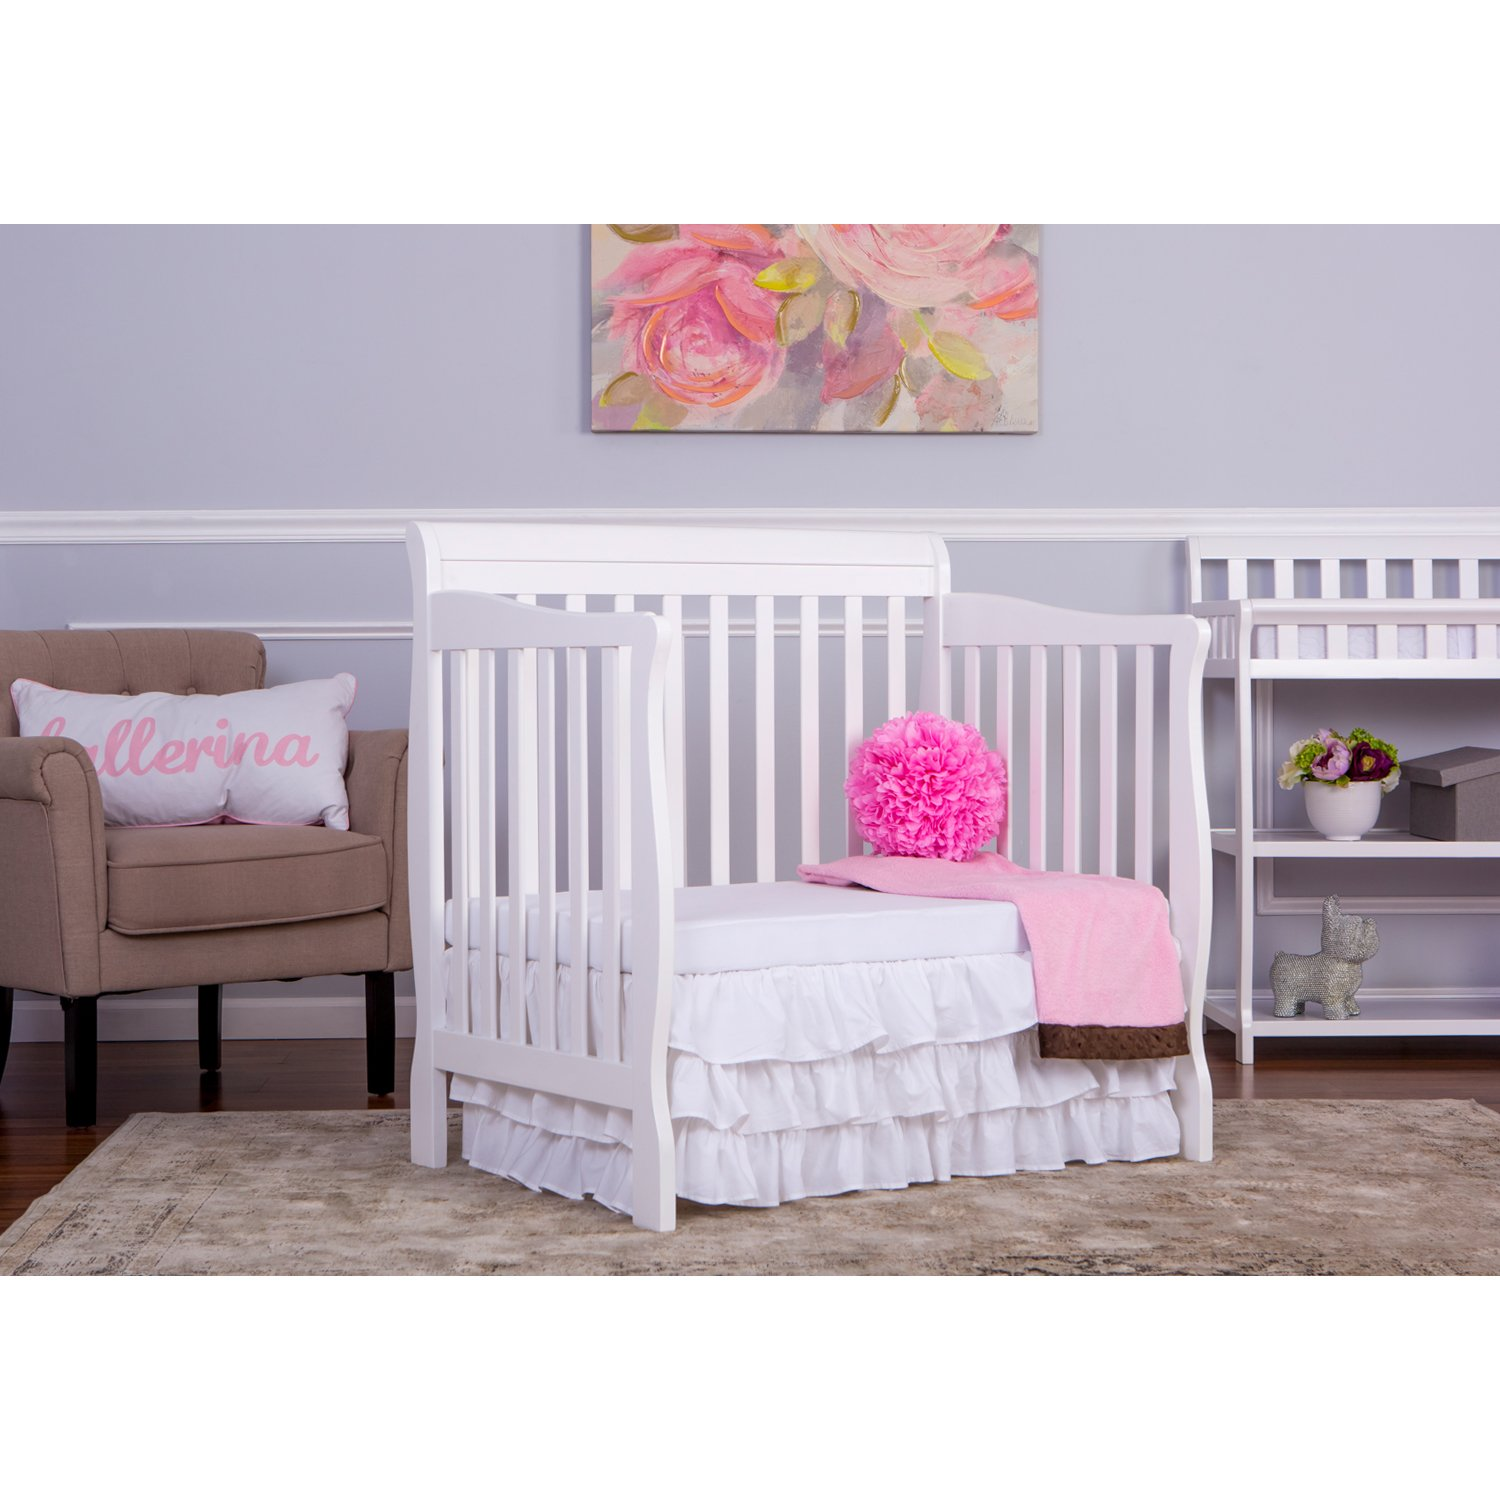 along tan two as bedroom babyletto origami with mini babylet wa calm crib carpet lagoon bedding convertible by t on inspiring and mercer plush trendy grey cribs ideas decor london madison wells